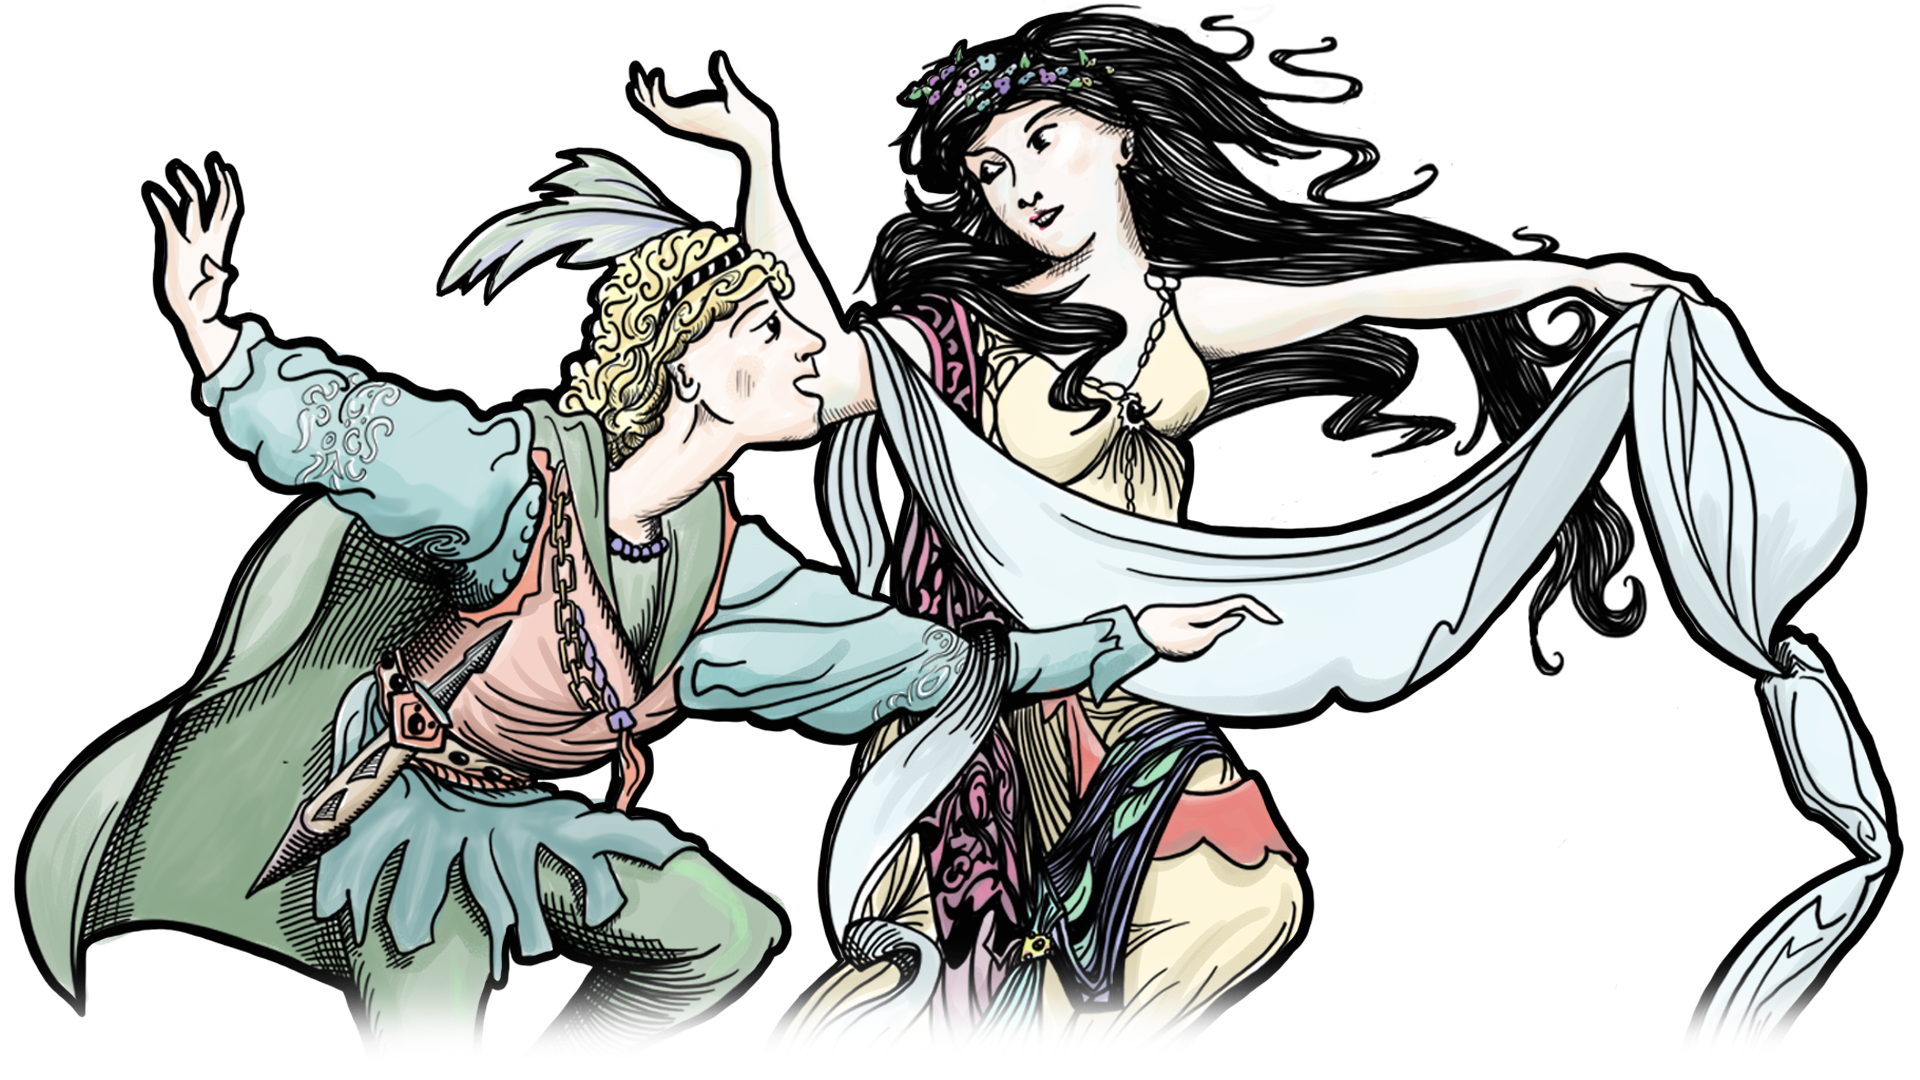 The Prince and The Ice Maiden dancing on the cover of King of the Woods